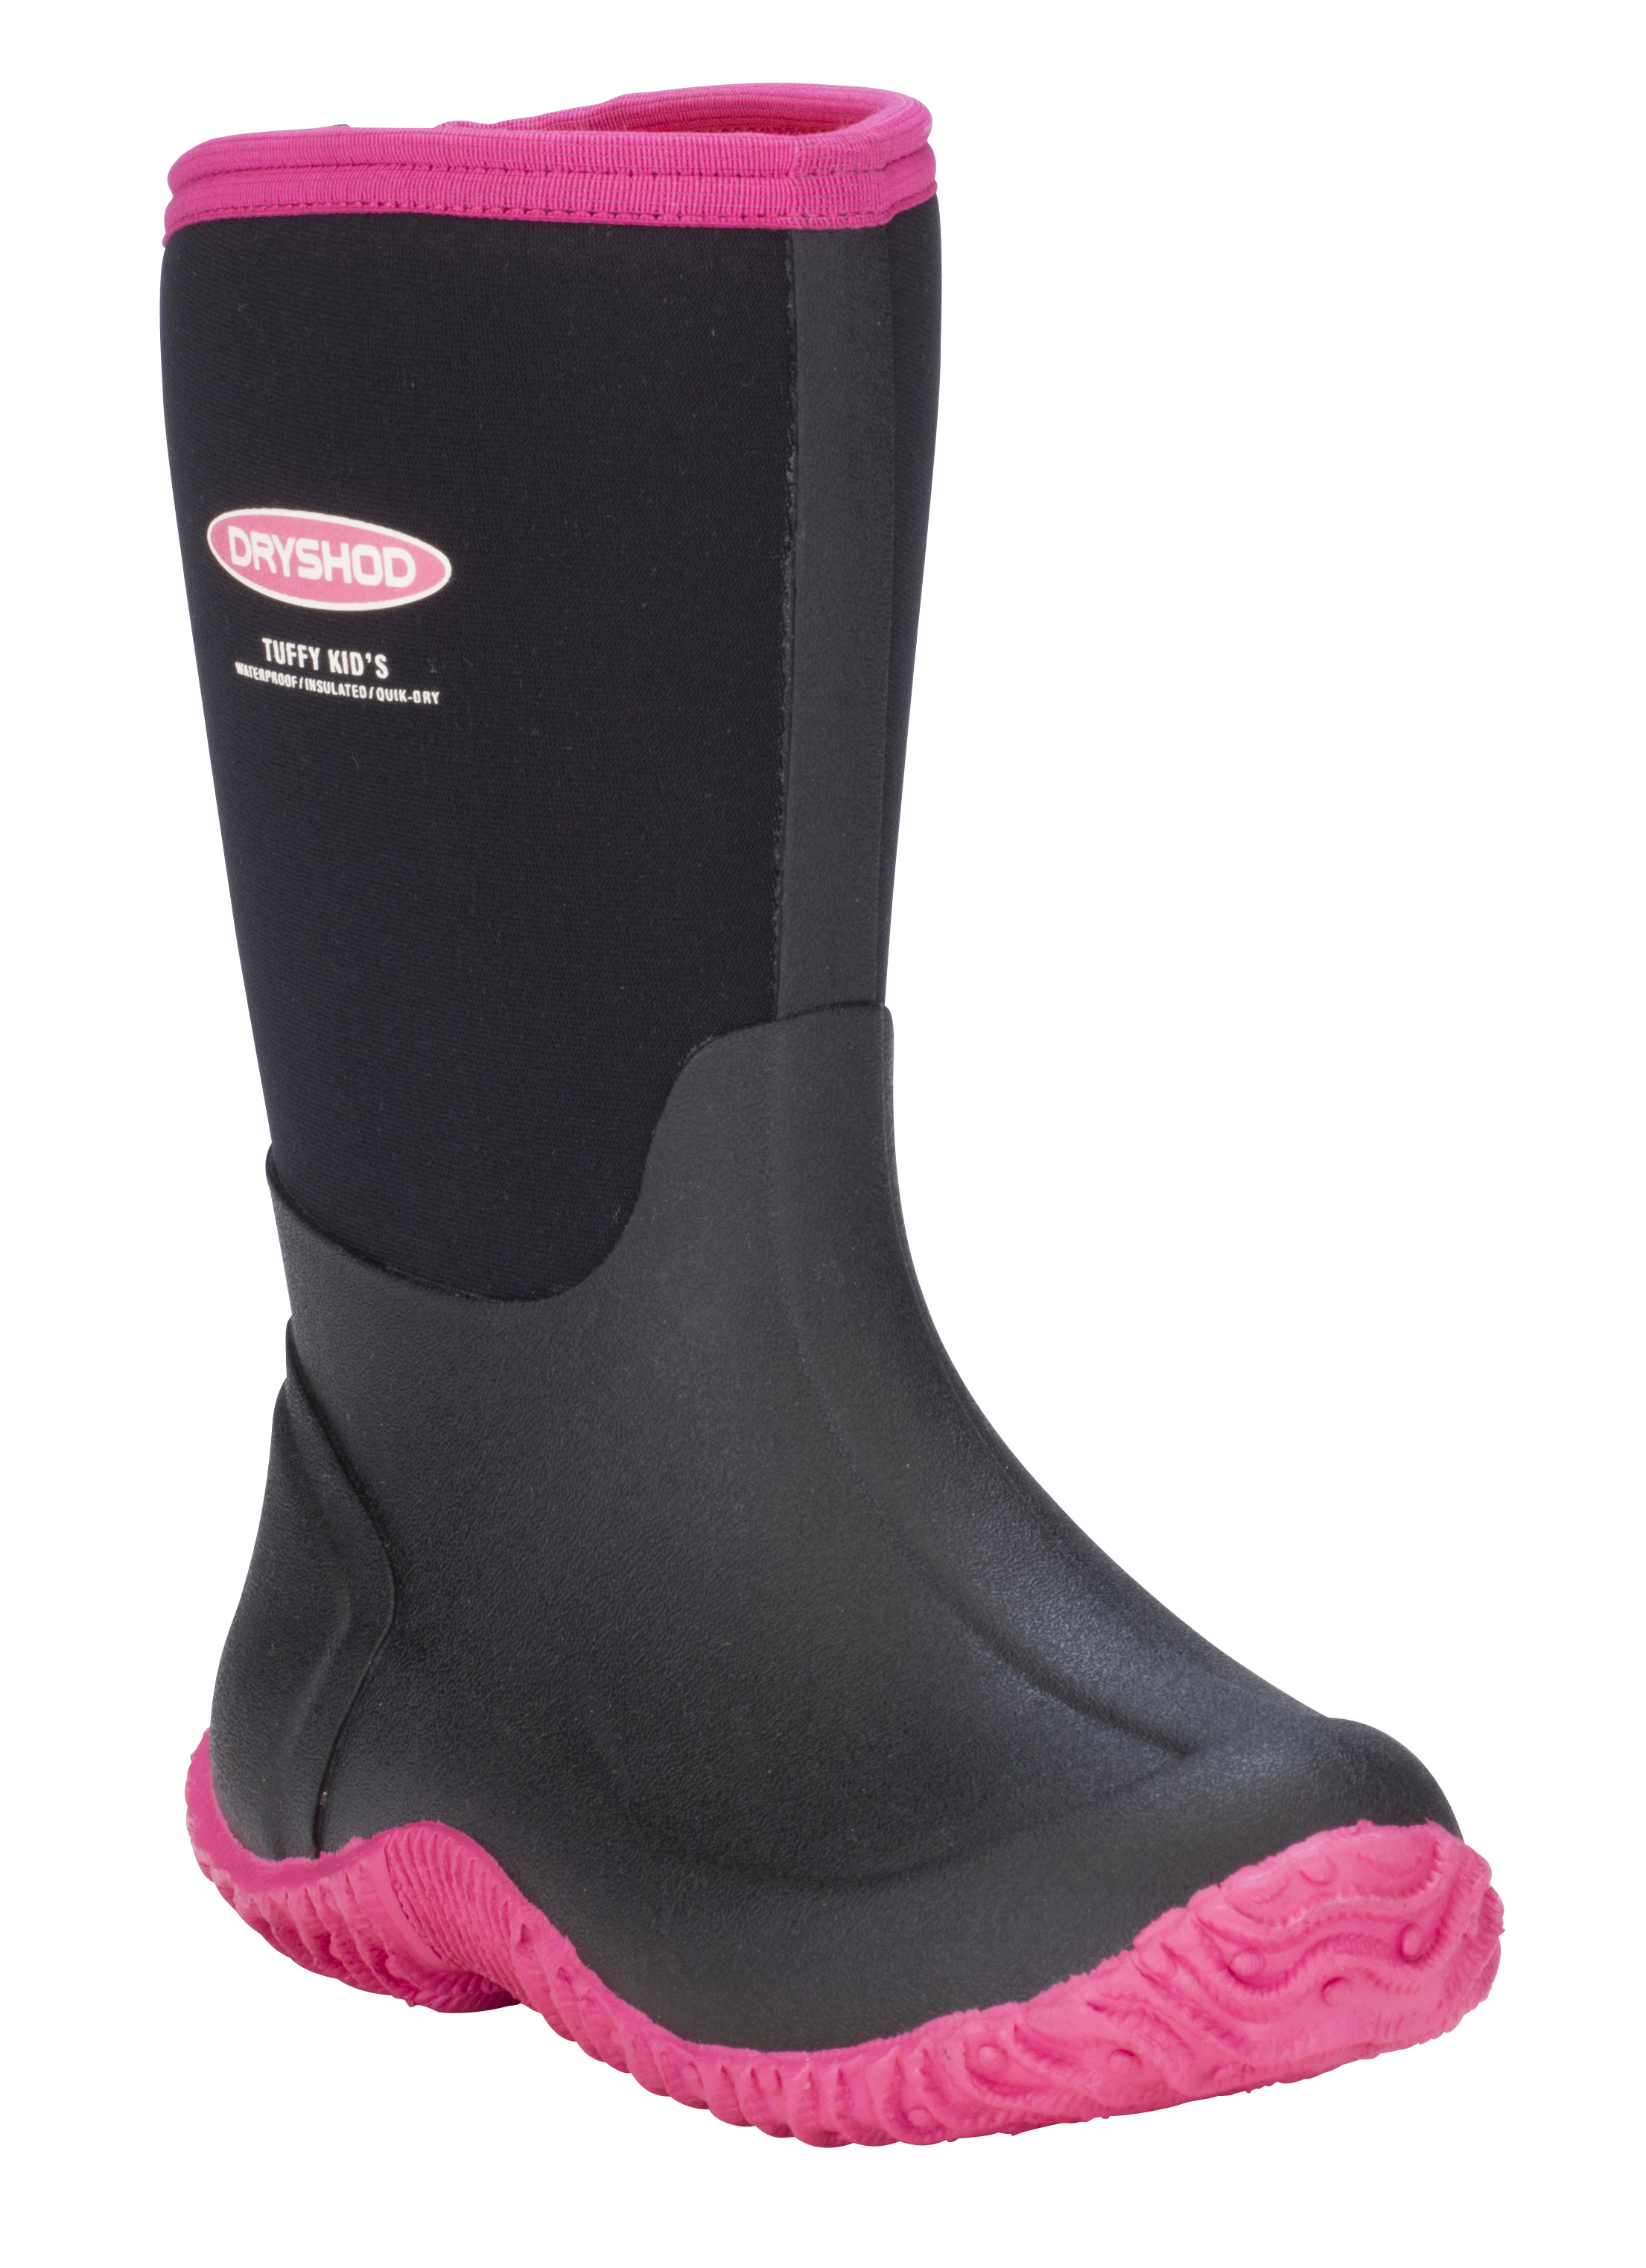 Dryshod Kids' Tuffy All Season Sport Boots - Mid/Hi Cut - Size Y3, Black/Pink